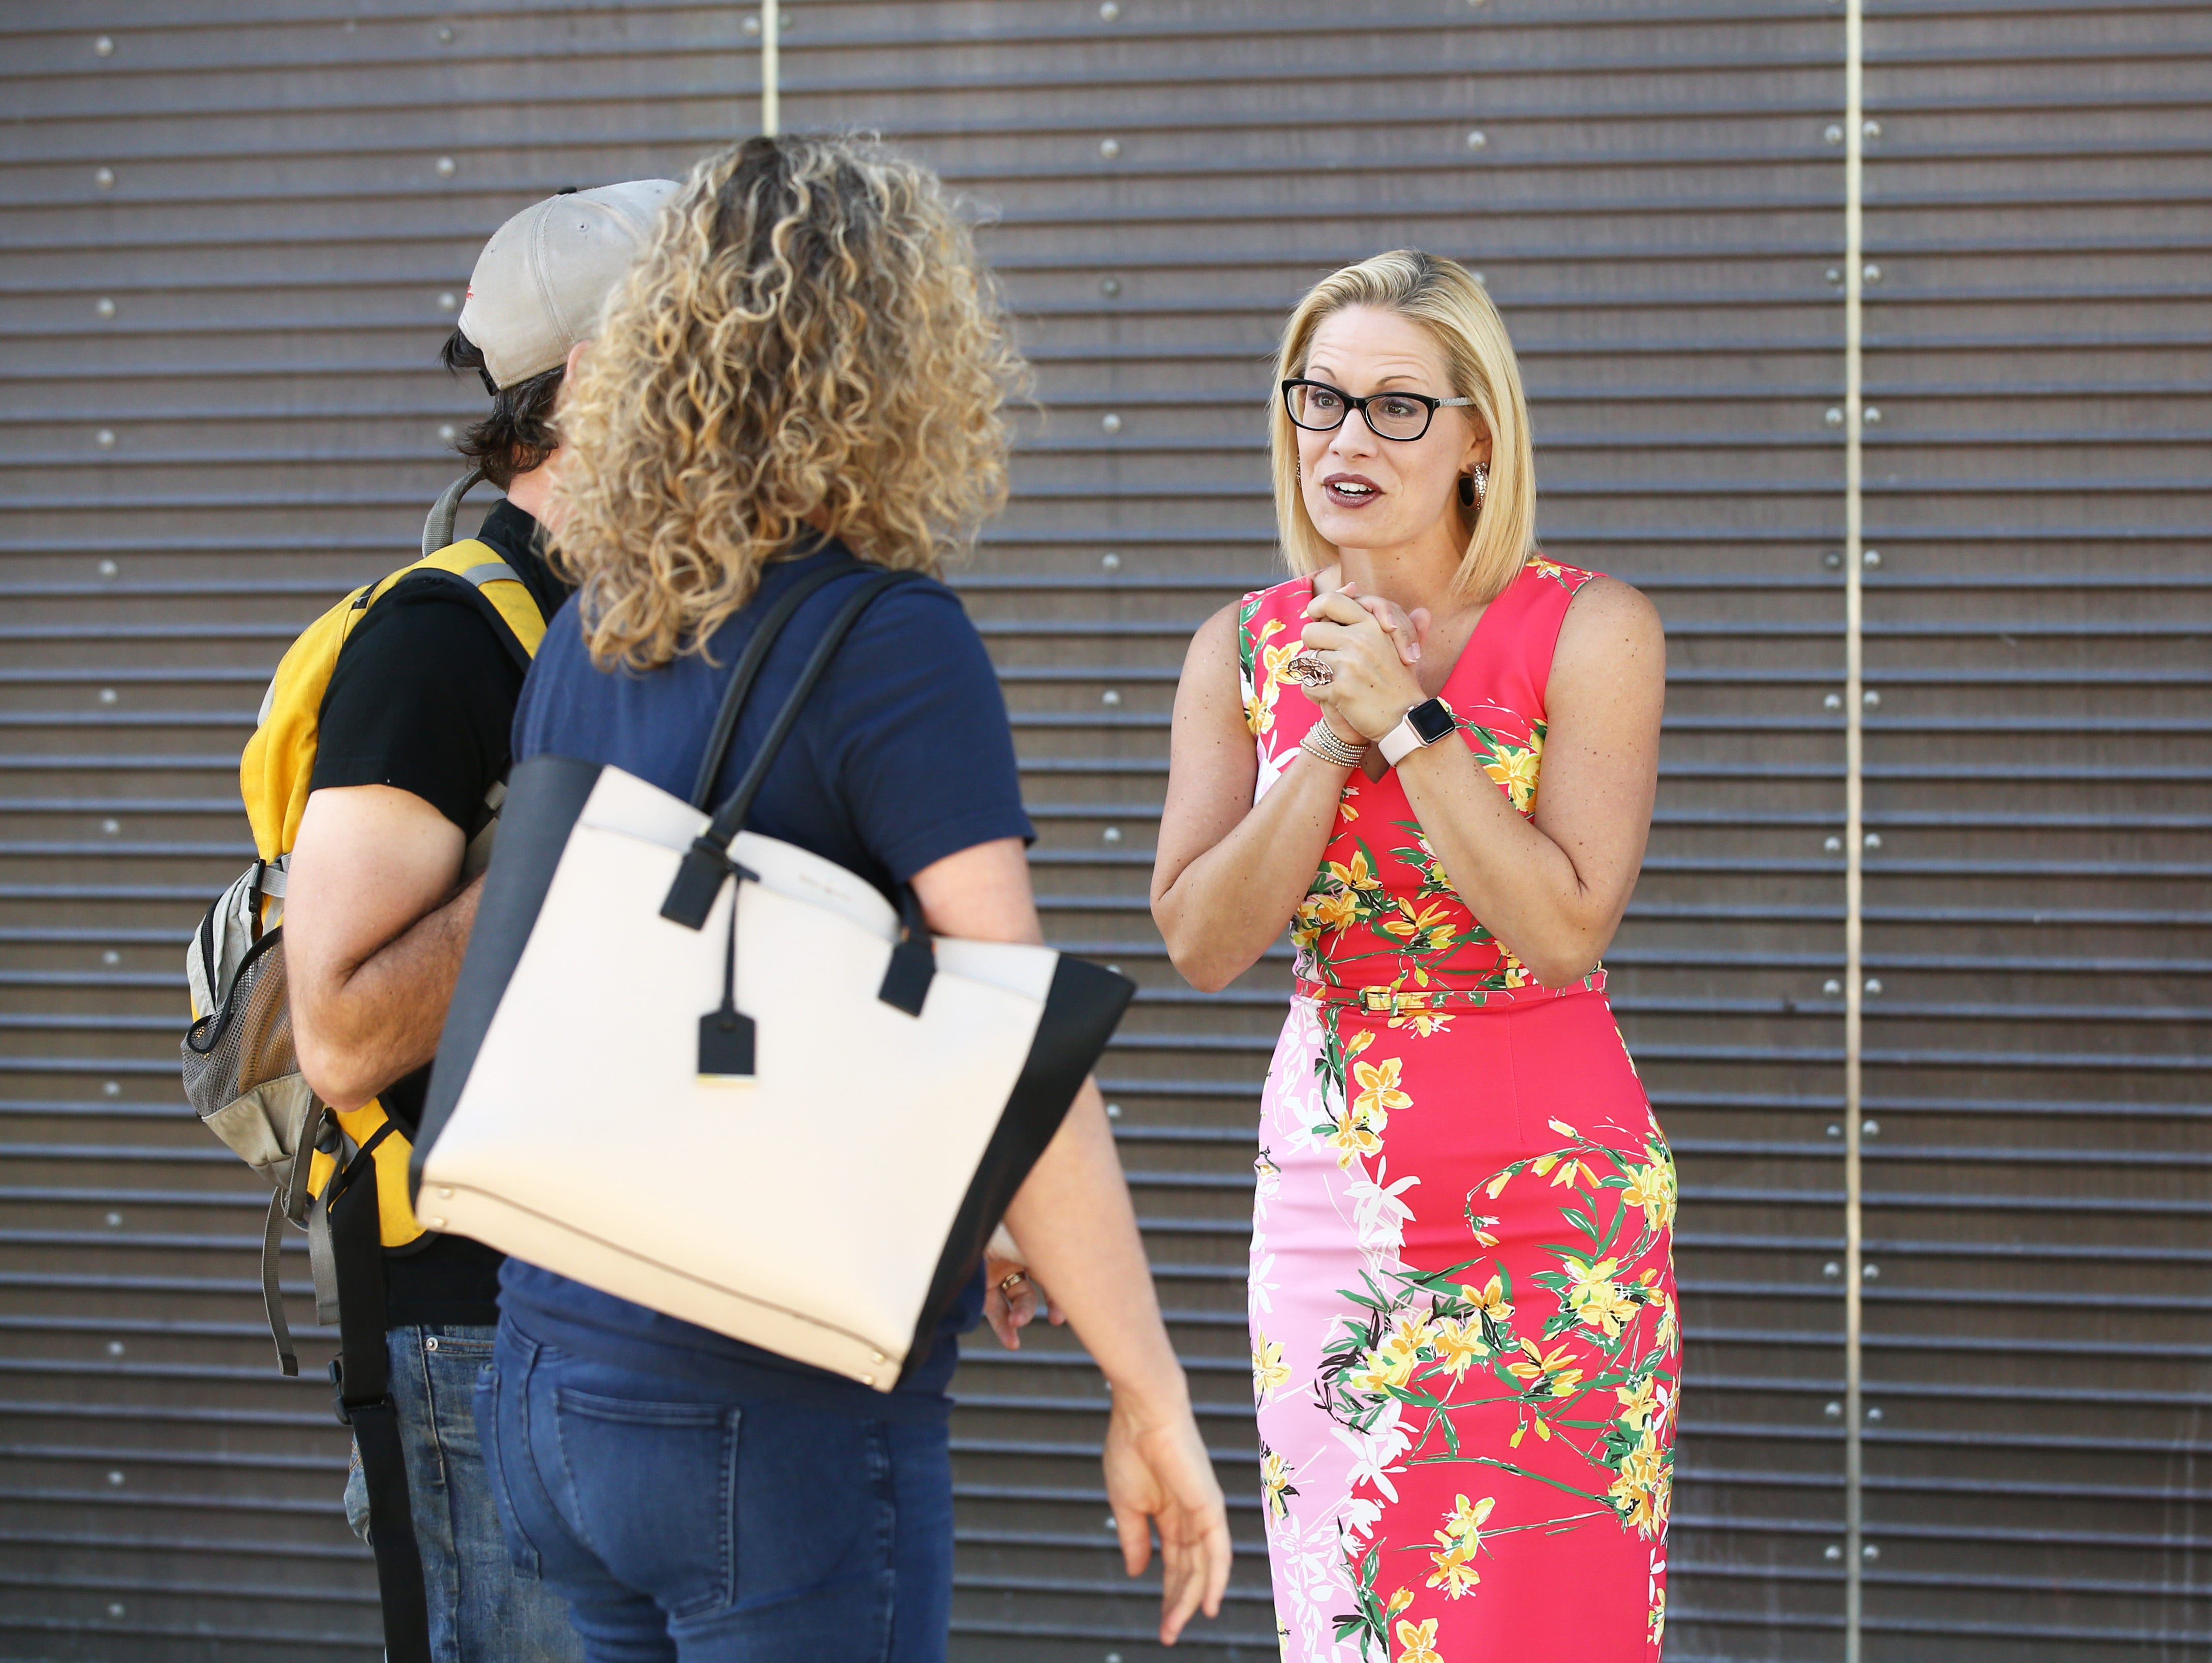 Rep. Kyrsten Sinema, D-Ariz., the Democratic candidate for Arizona's U.S. Senate seat, thanks a couple for voting outside a polling center on Nov. 6, 2018 at the Burton Barr Central Library in Phoenix.